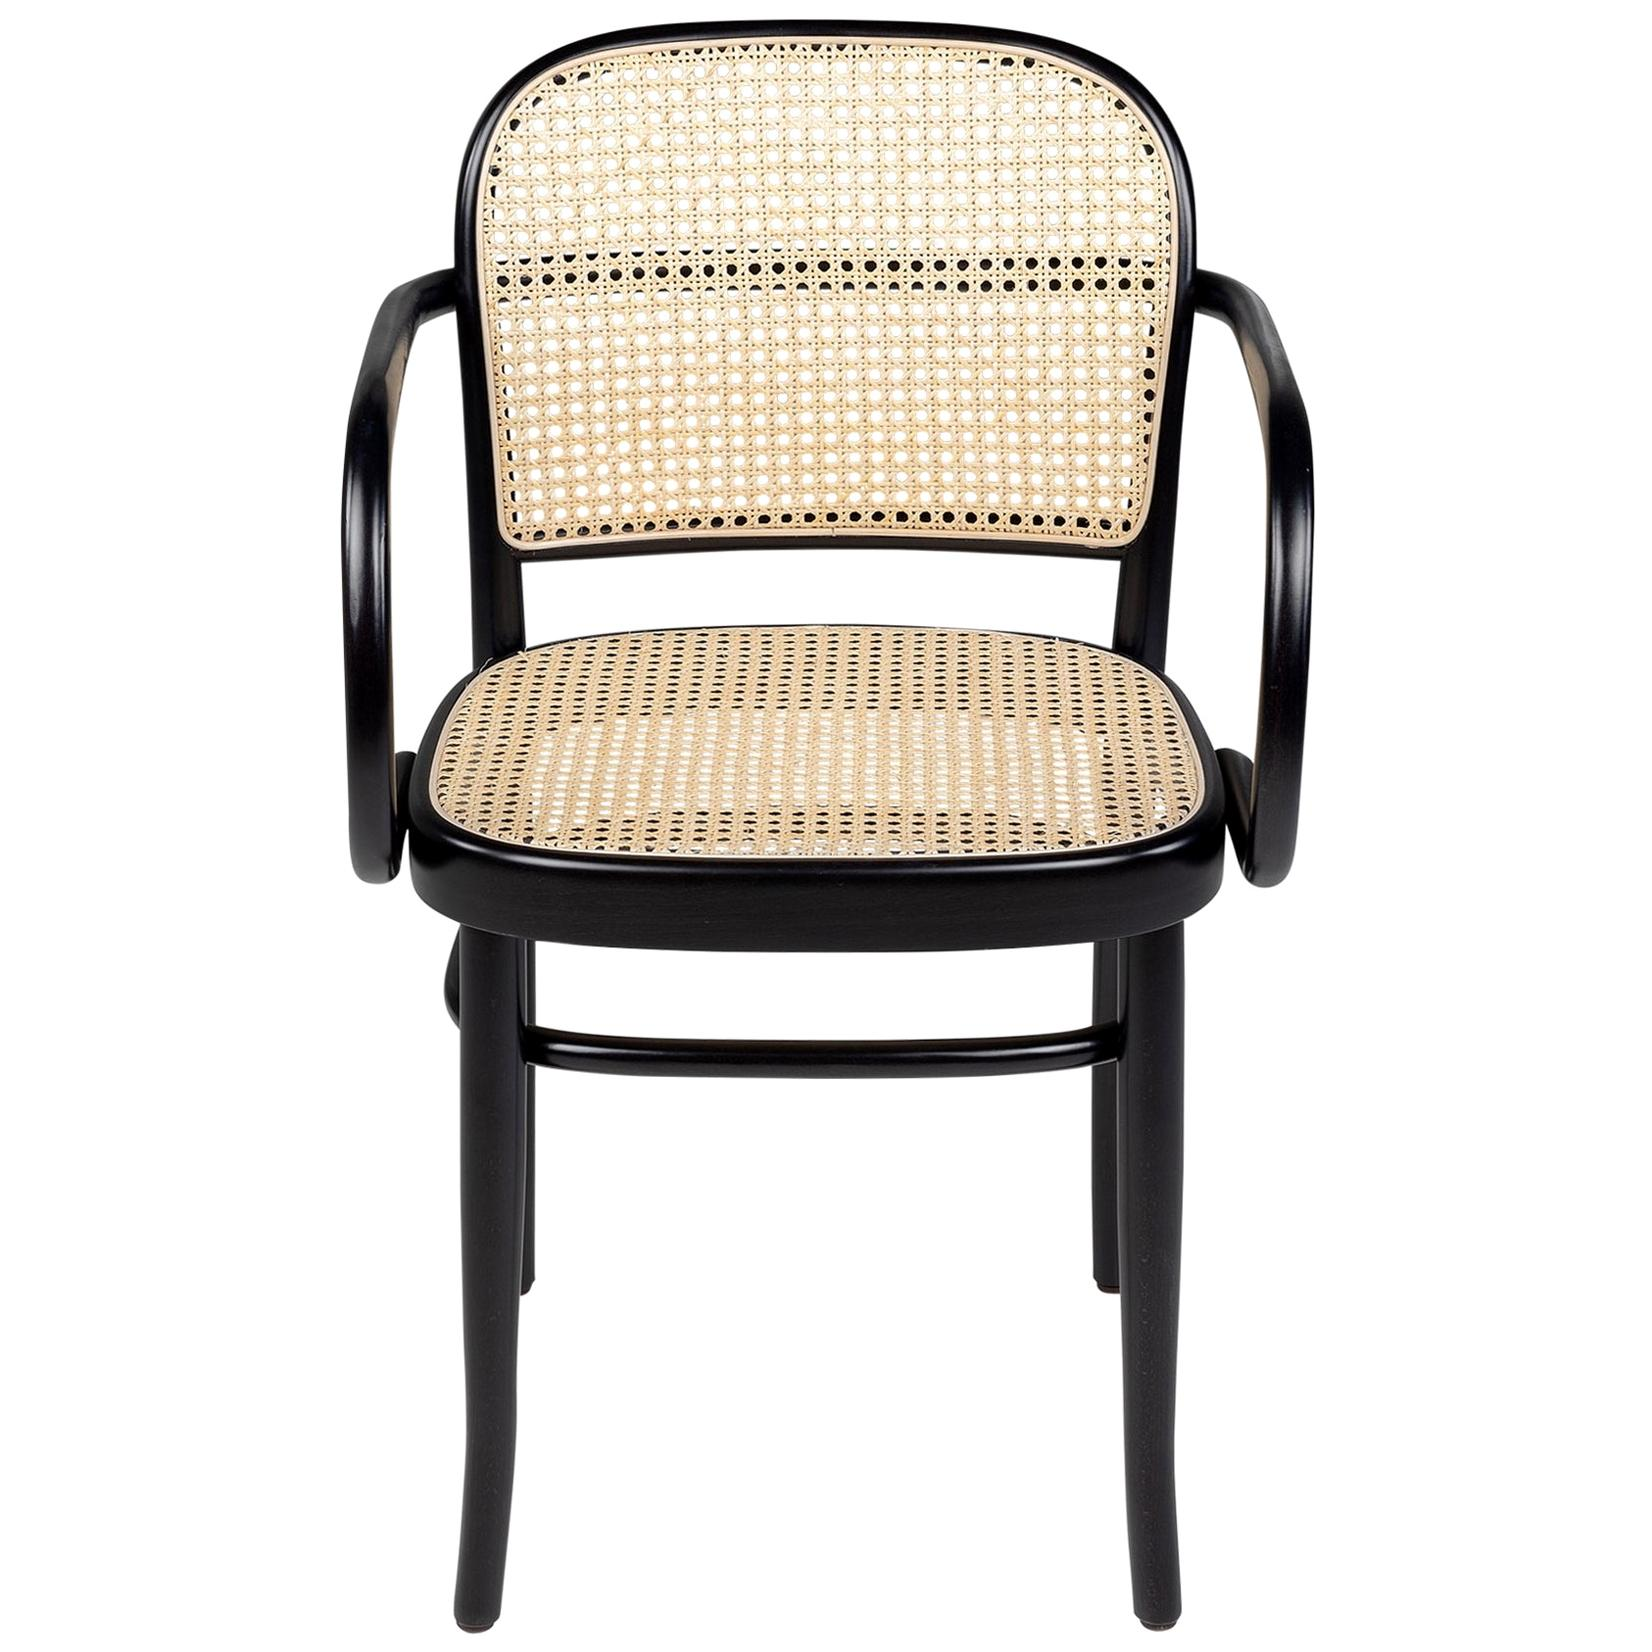 Black Lacquered Beech Wooden and Natural Wicker Cane Armchair